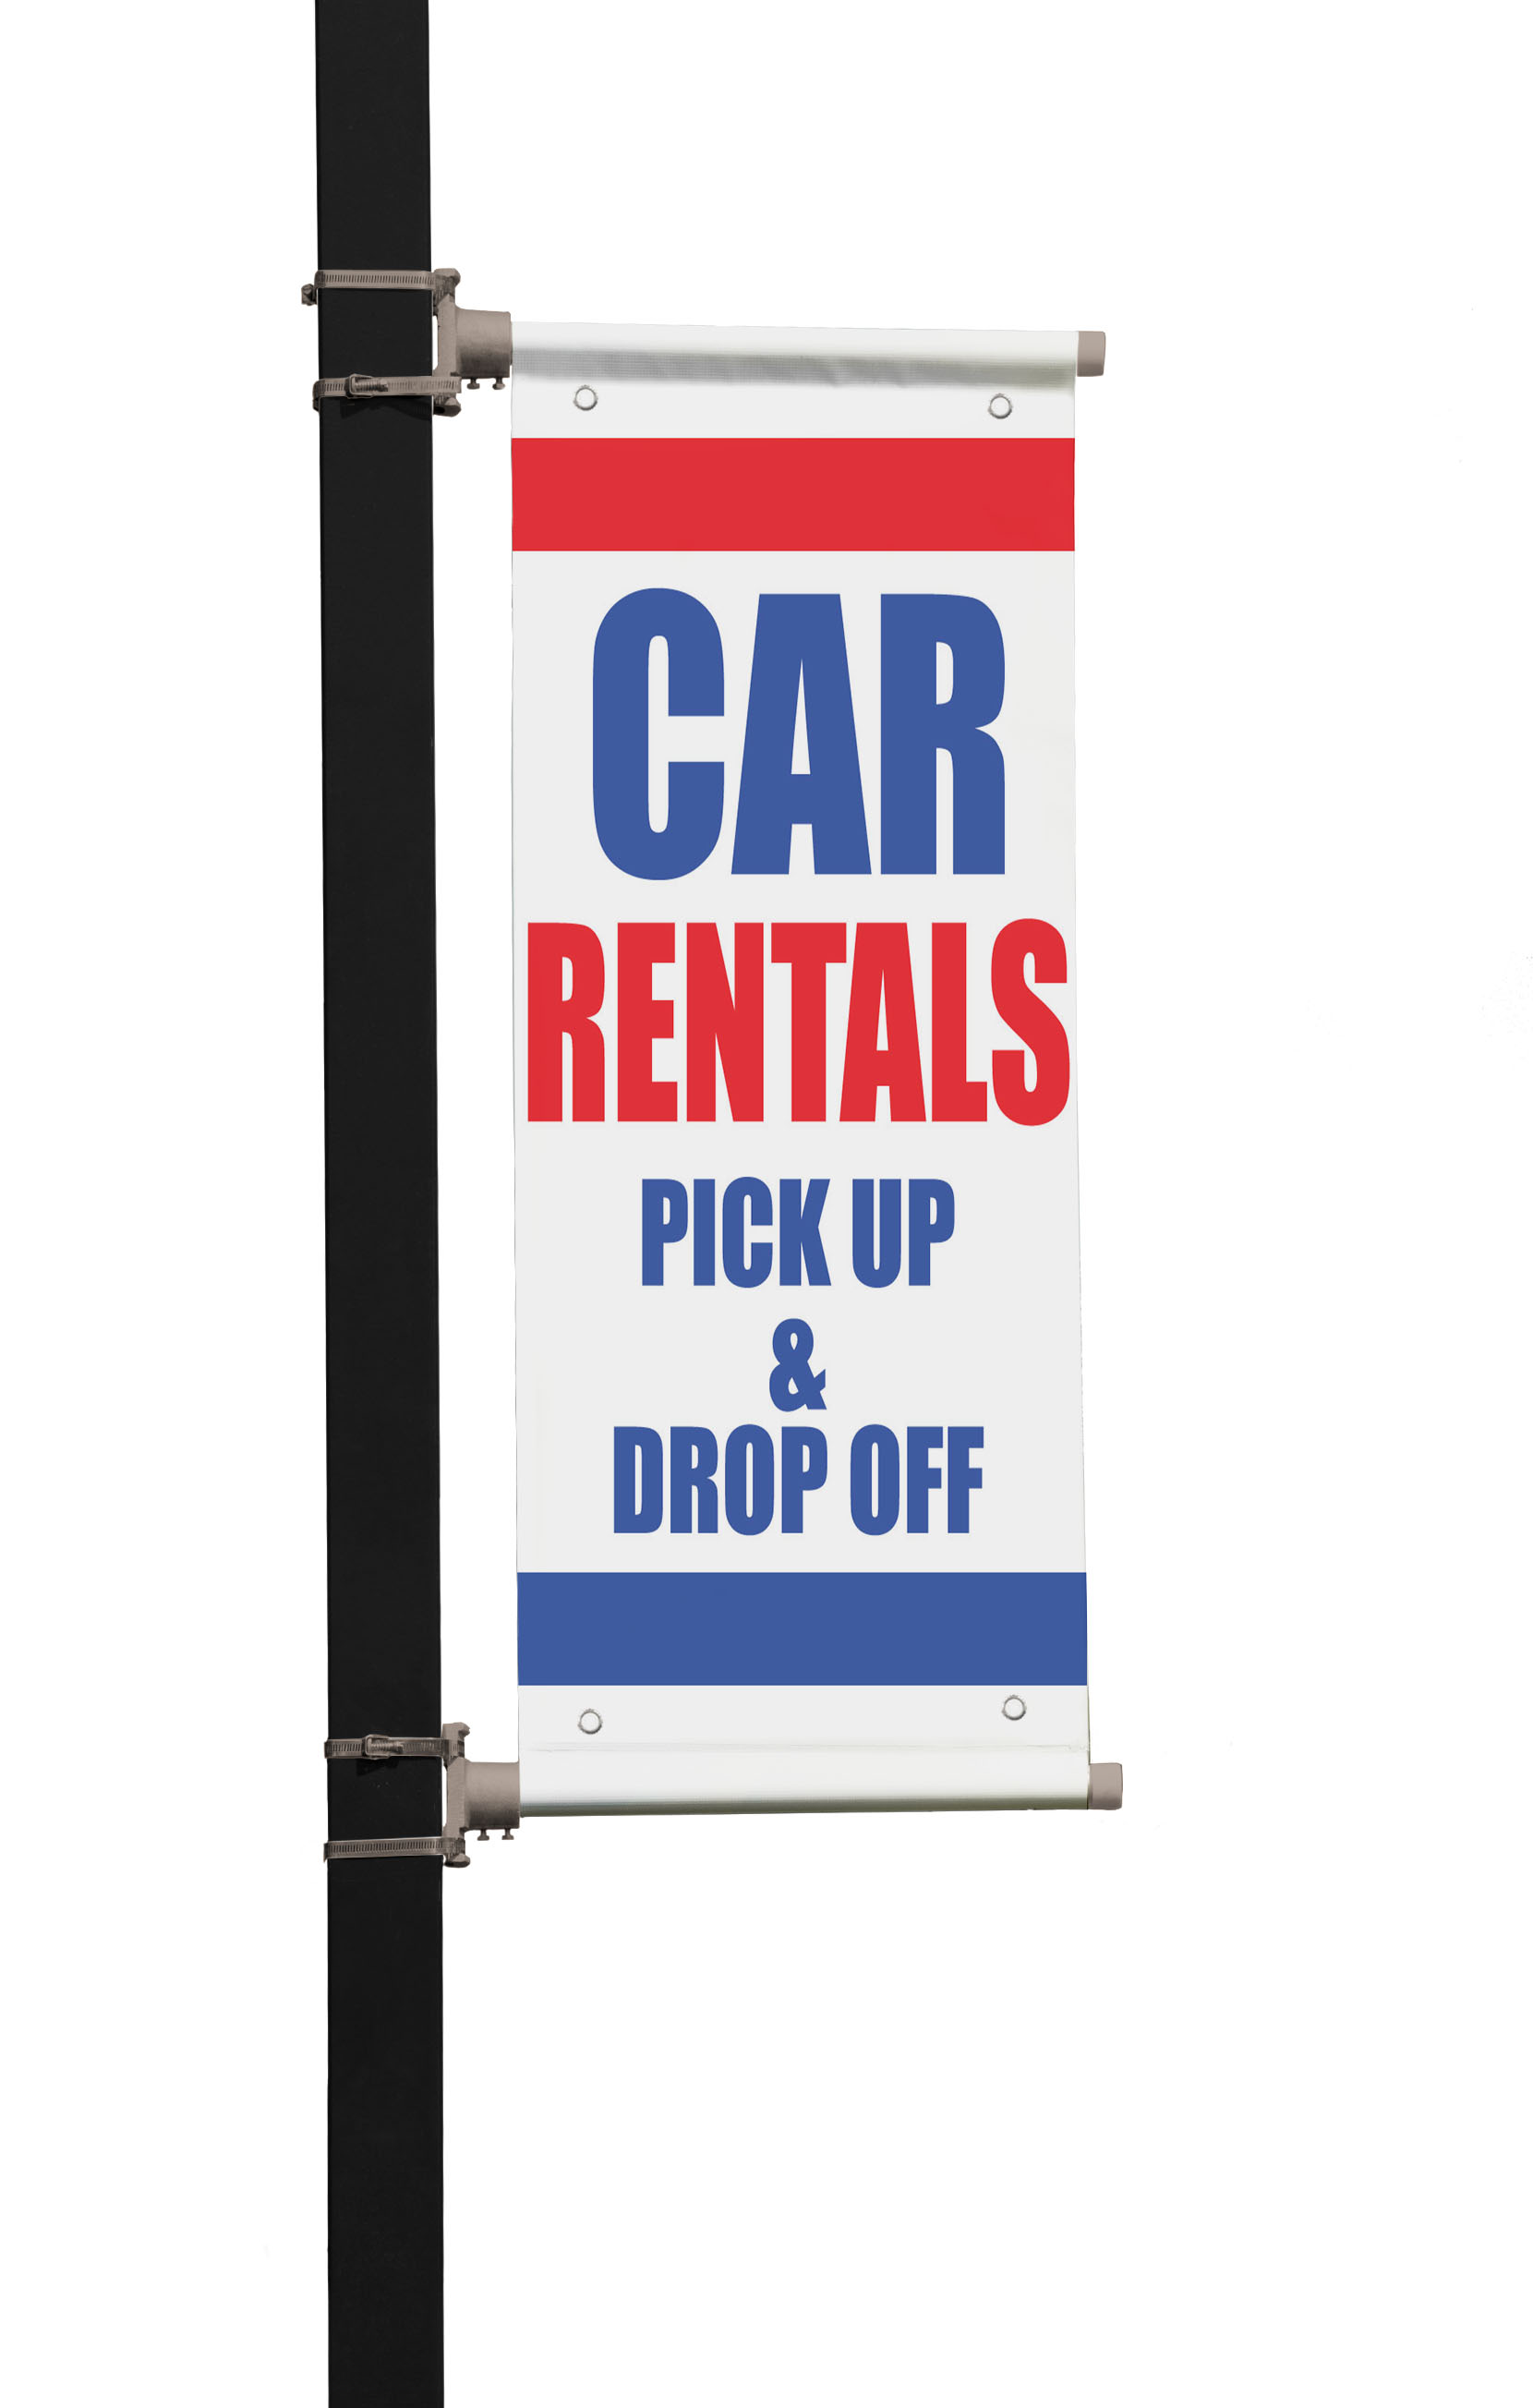 car rentals pick up drop off double sided vertical pole banner sign. Black Bedroom Furniture Sets. Home Design Ideas